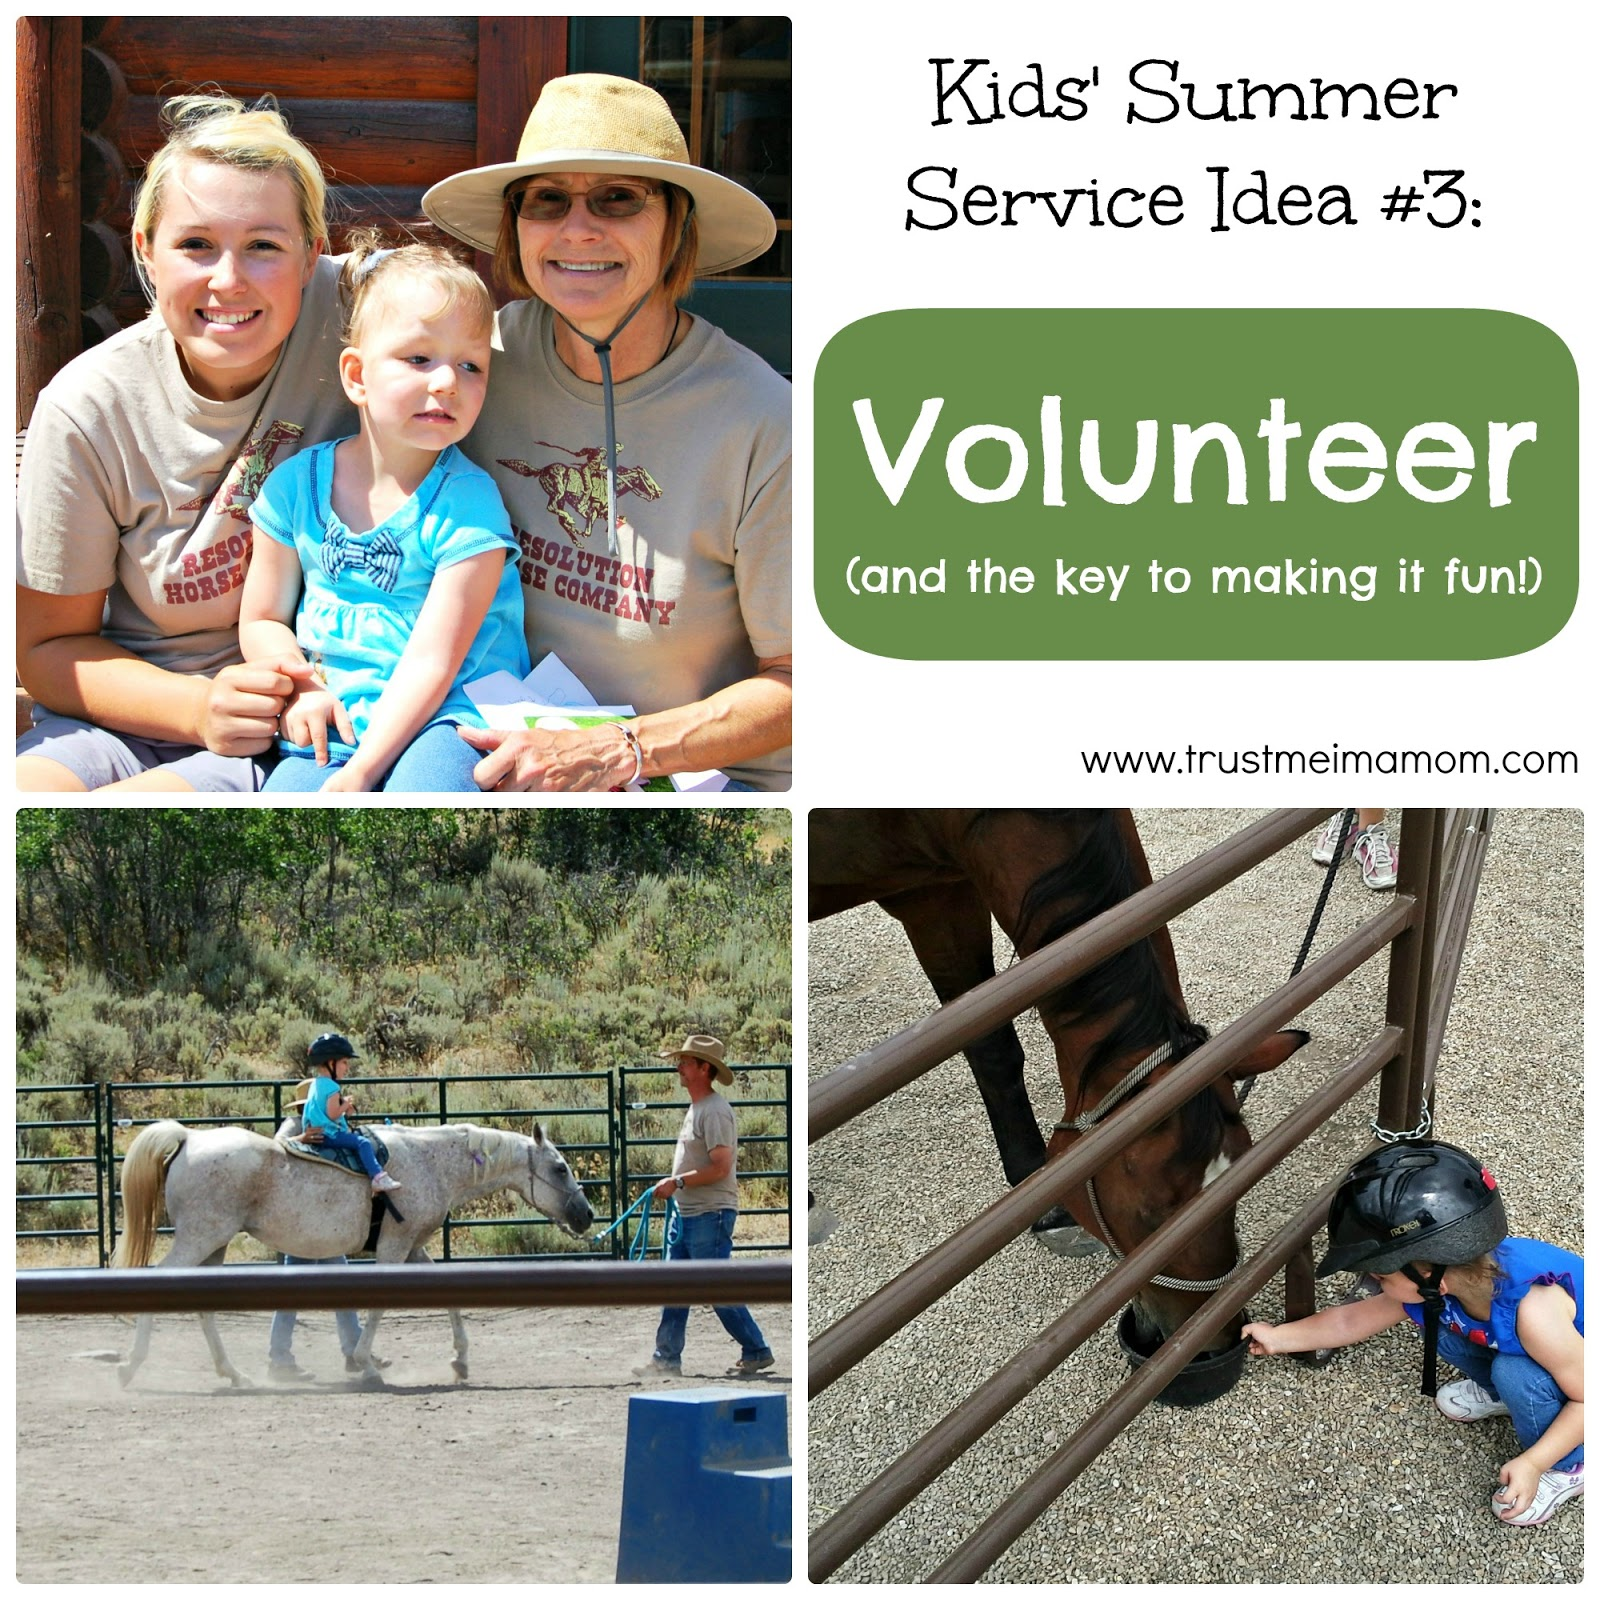 Fun Ways to Serve with Your Kids This Summer: Idea #3 Volunteer (and how to make it more fun!)